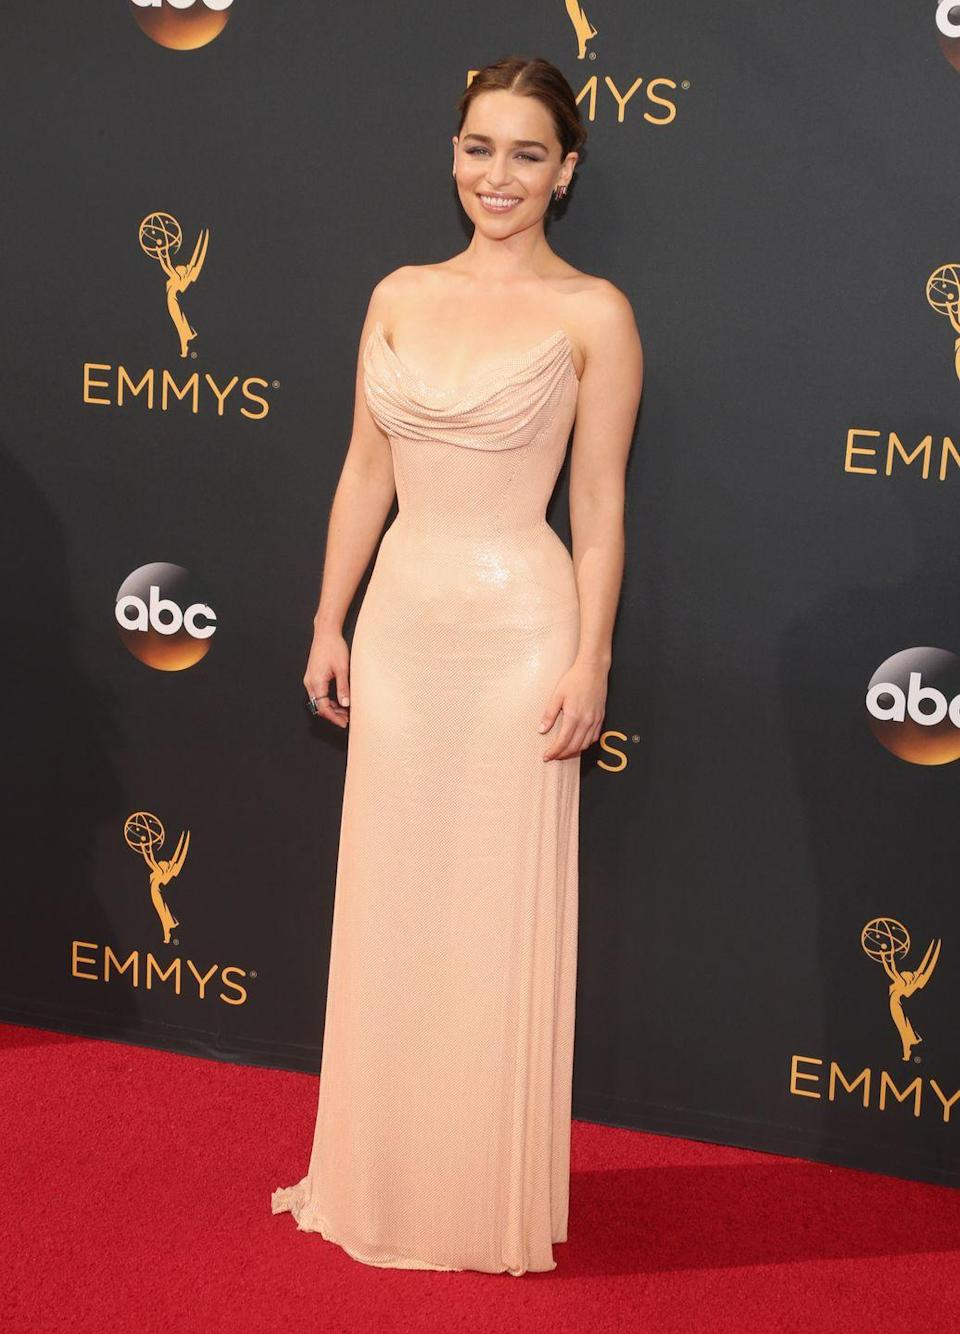 <p>The <em>Game of Thrones </em>star had our eyes playing tricks on us in this flesh-toned Atelier Versace gown. </p>